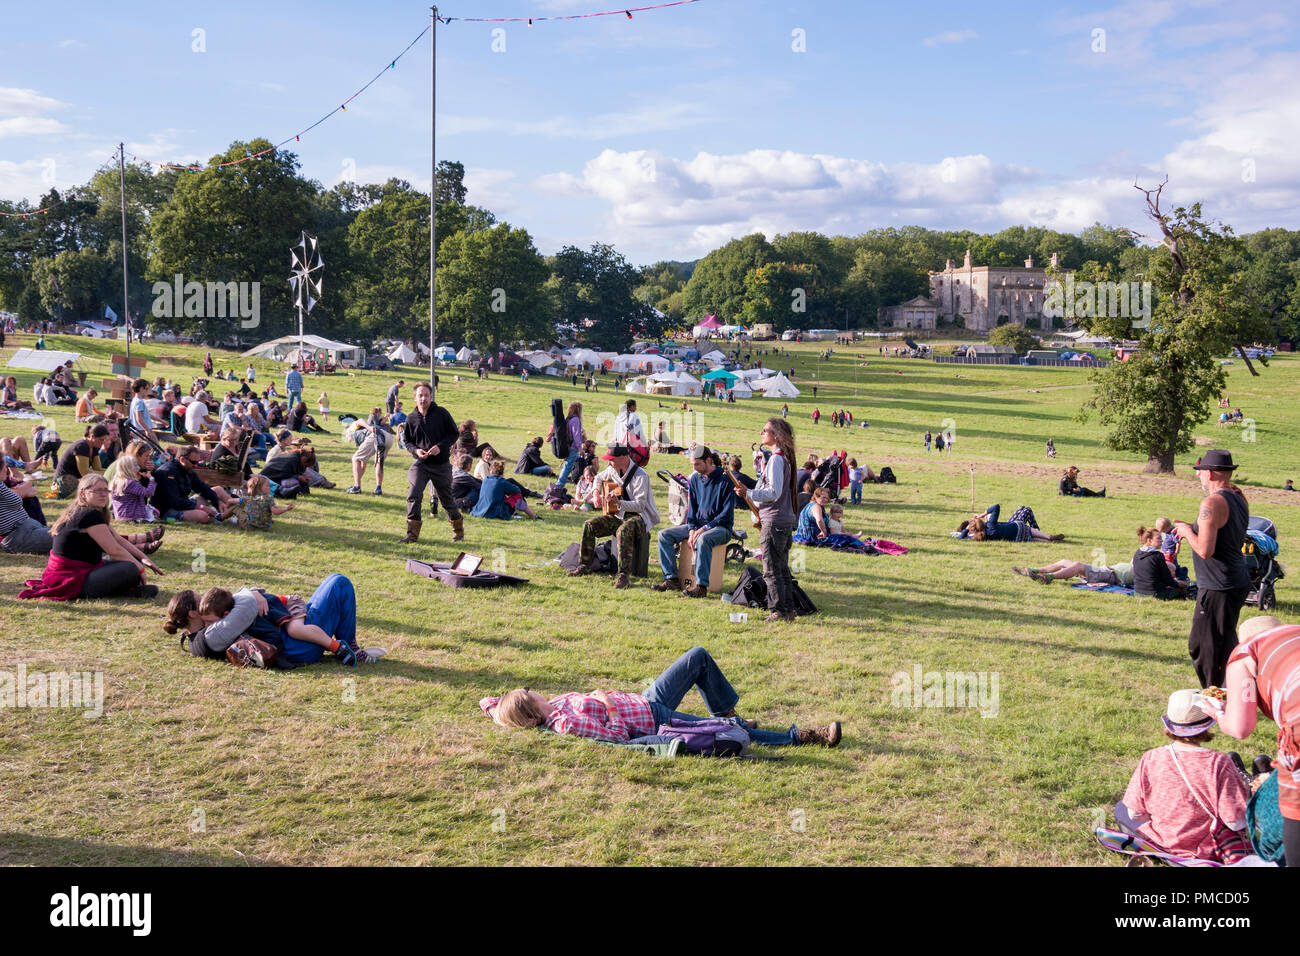 Chepstow, Wales – Aug 16: People relax, and laze about, enjoying the peace an tranquiity of a sunny Sunday on 16 Aug 2015 at the Green Gathering Festi - Stock Image